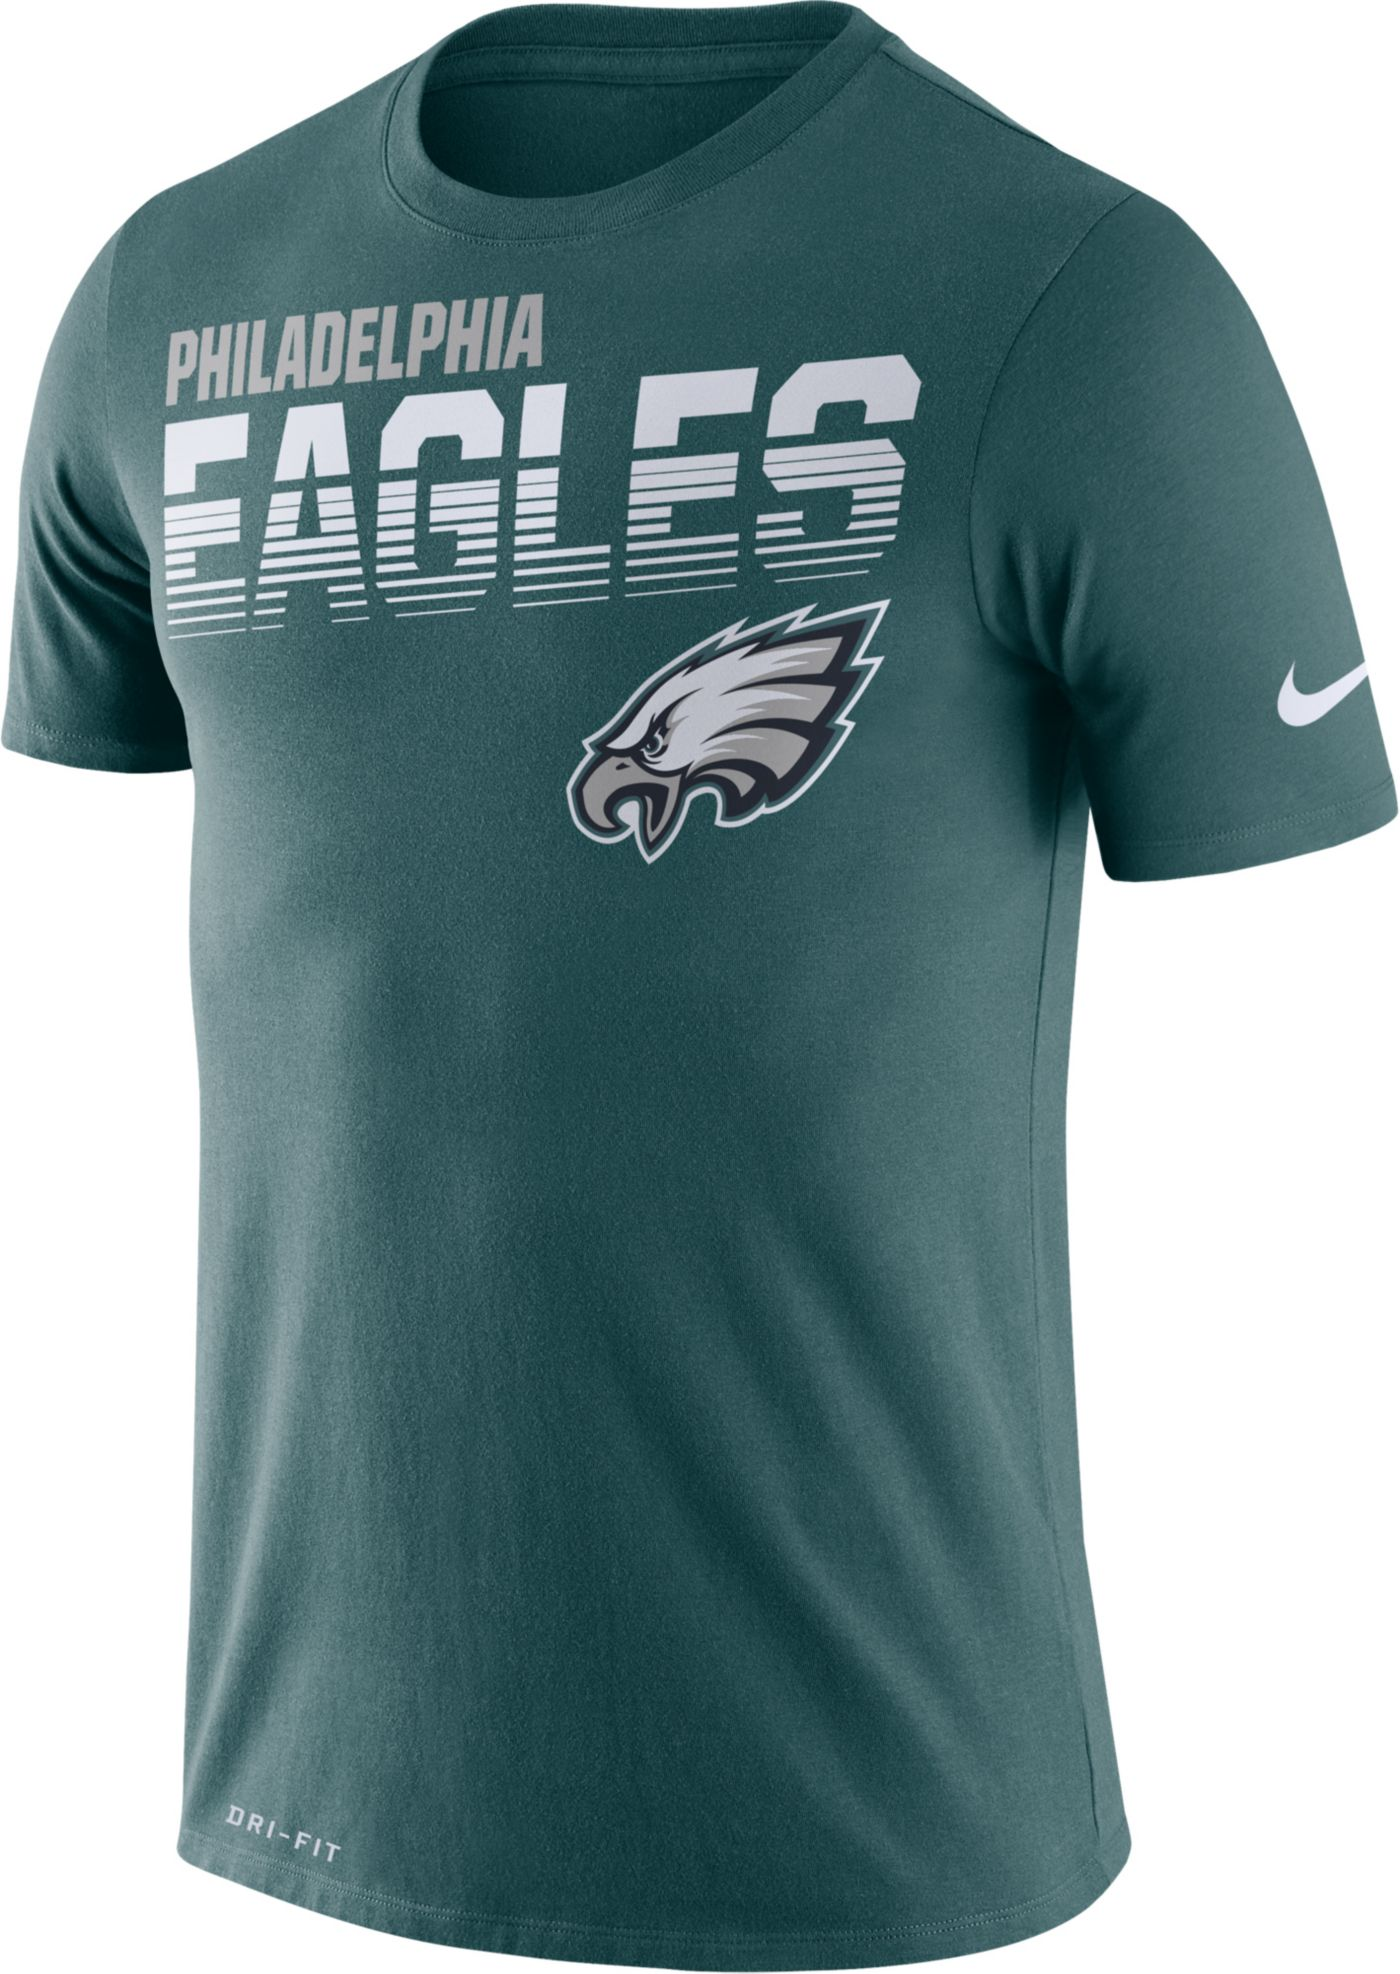 Nike Men's Philadelphia Eagles Sideline Legend Performance Green T-Shirt